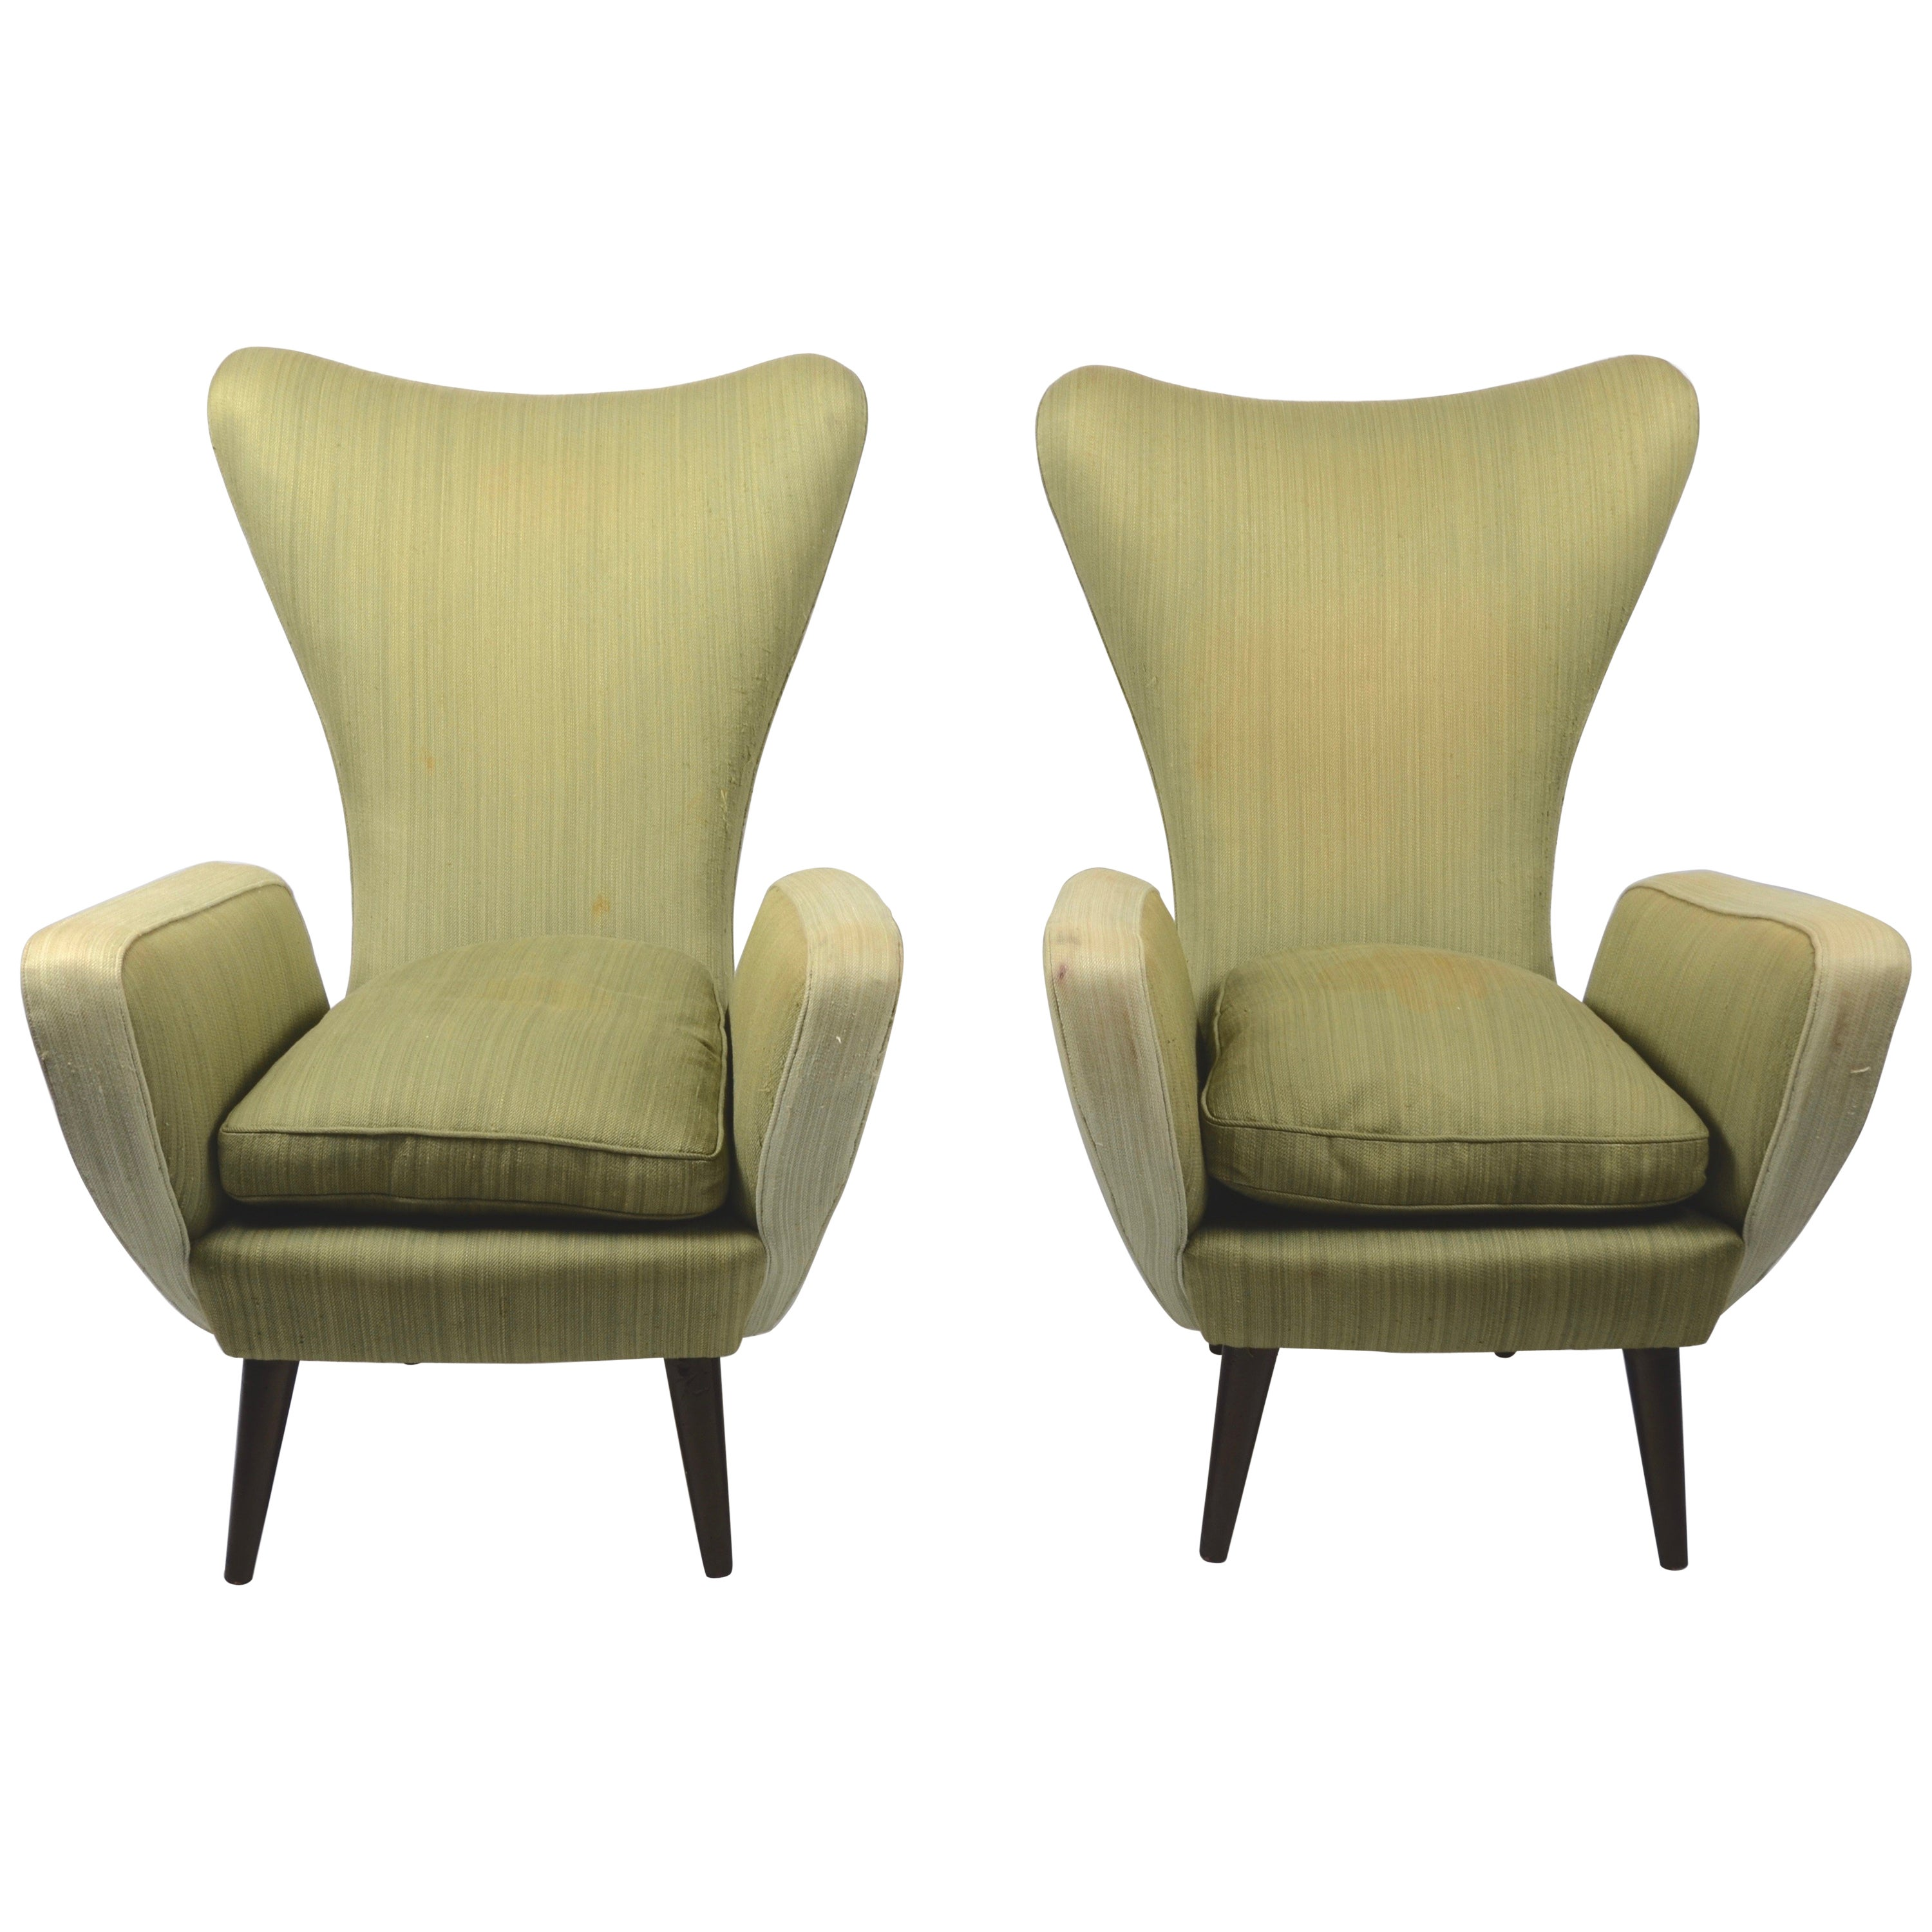 Pair of Lounge Chairs, Italian, 1950s